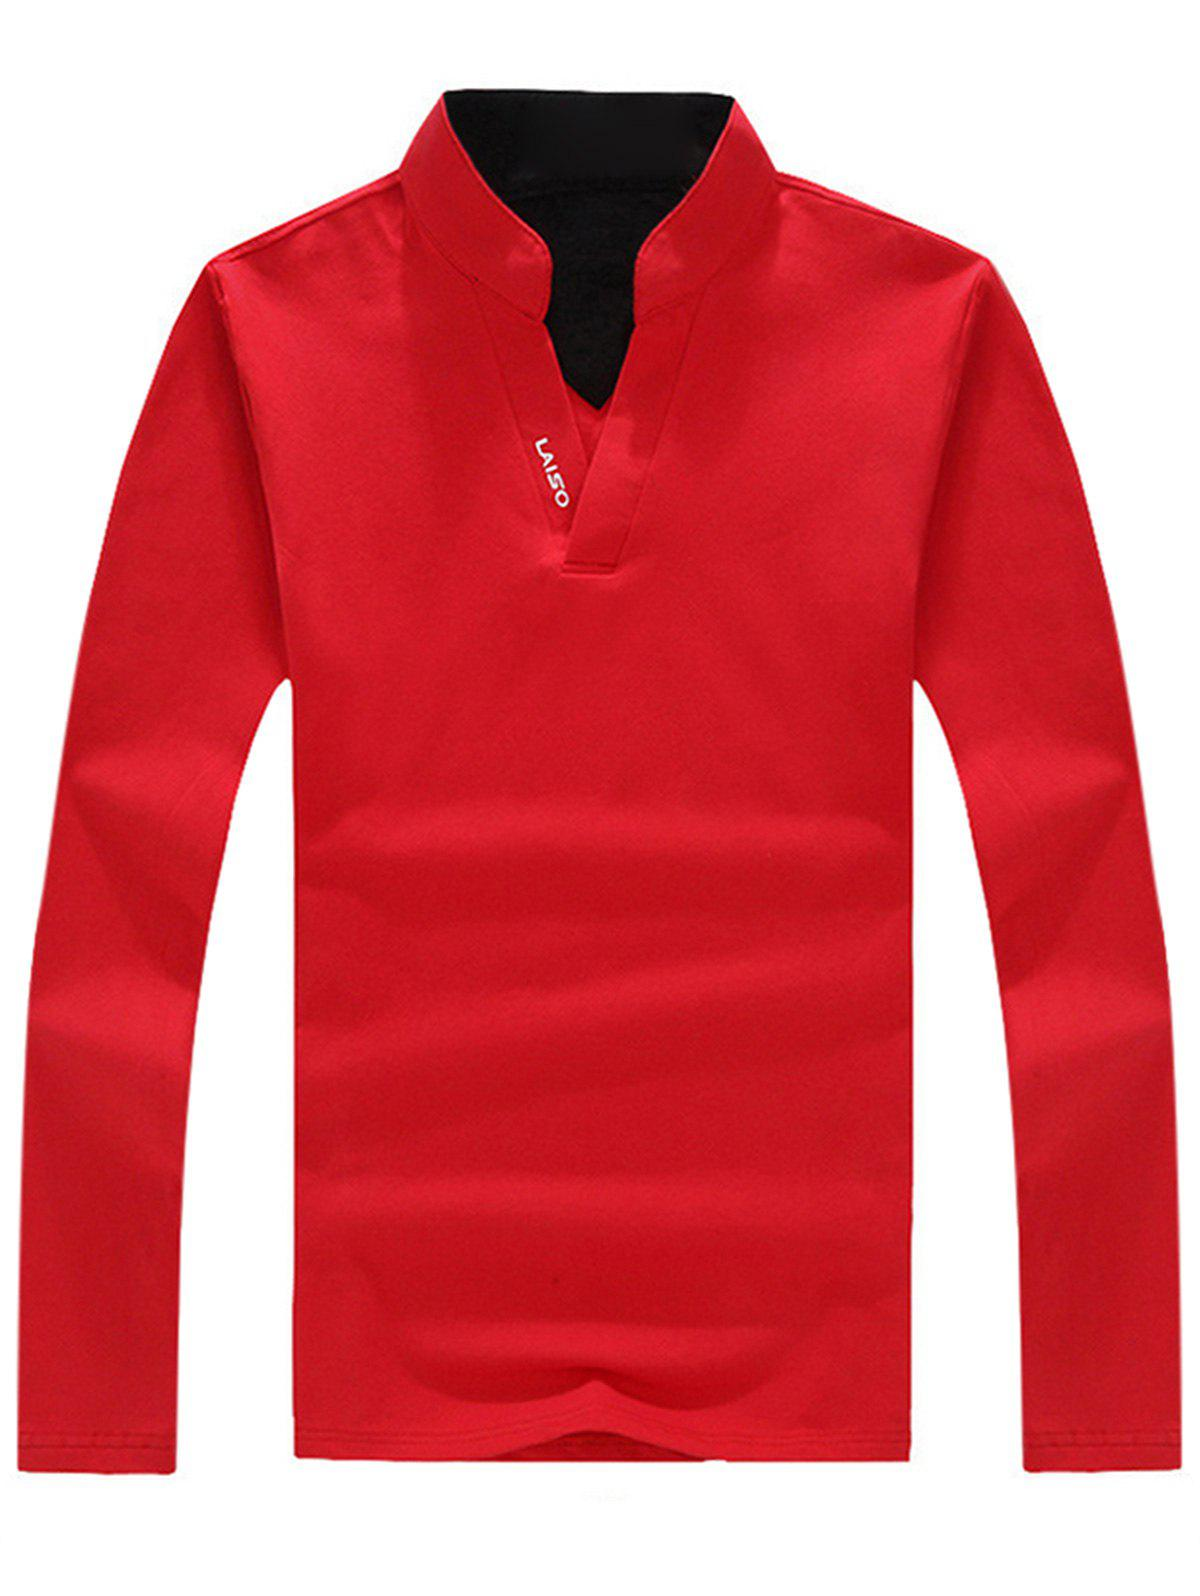 Shops Graphic Long Sleeve Polo T-shirt